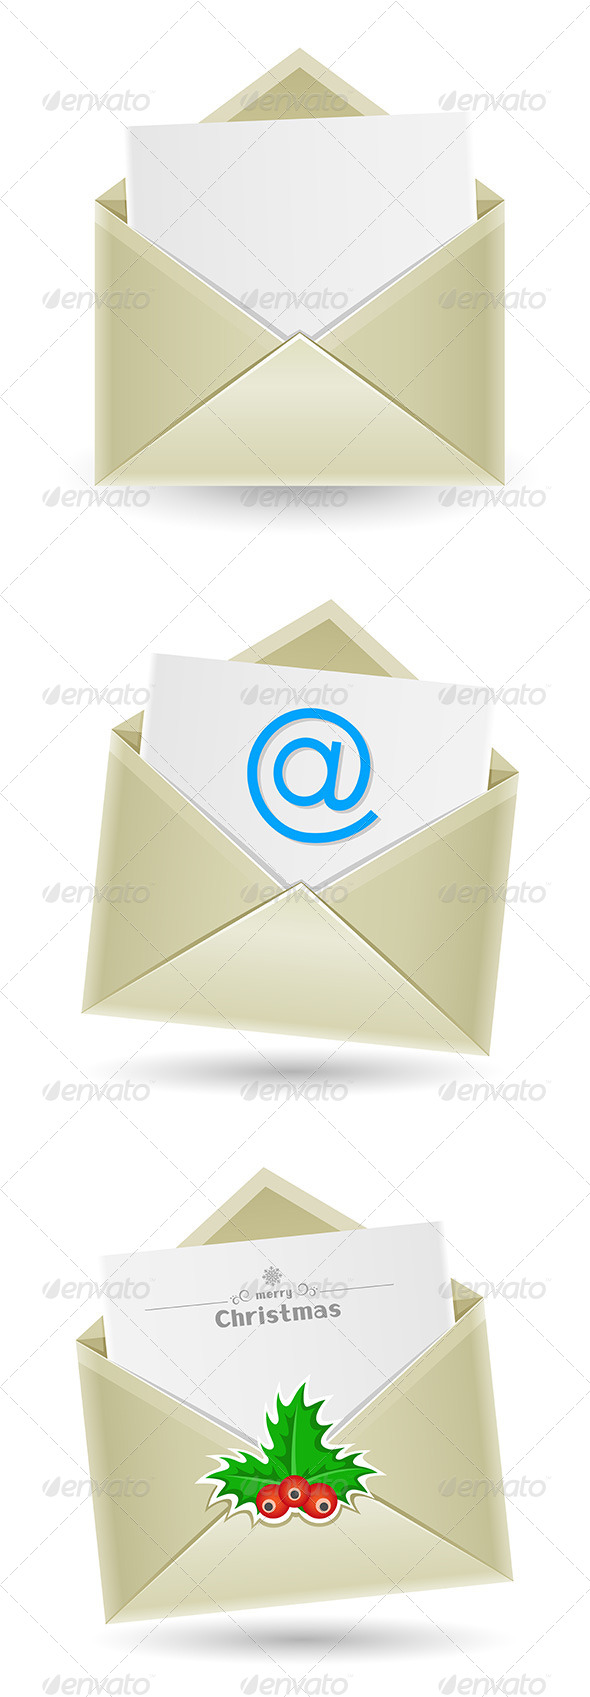 Email Envelope - Communications Technology